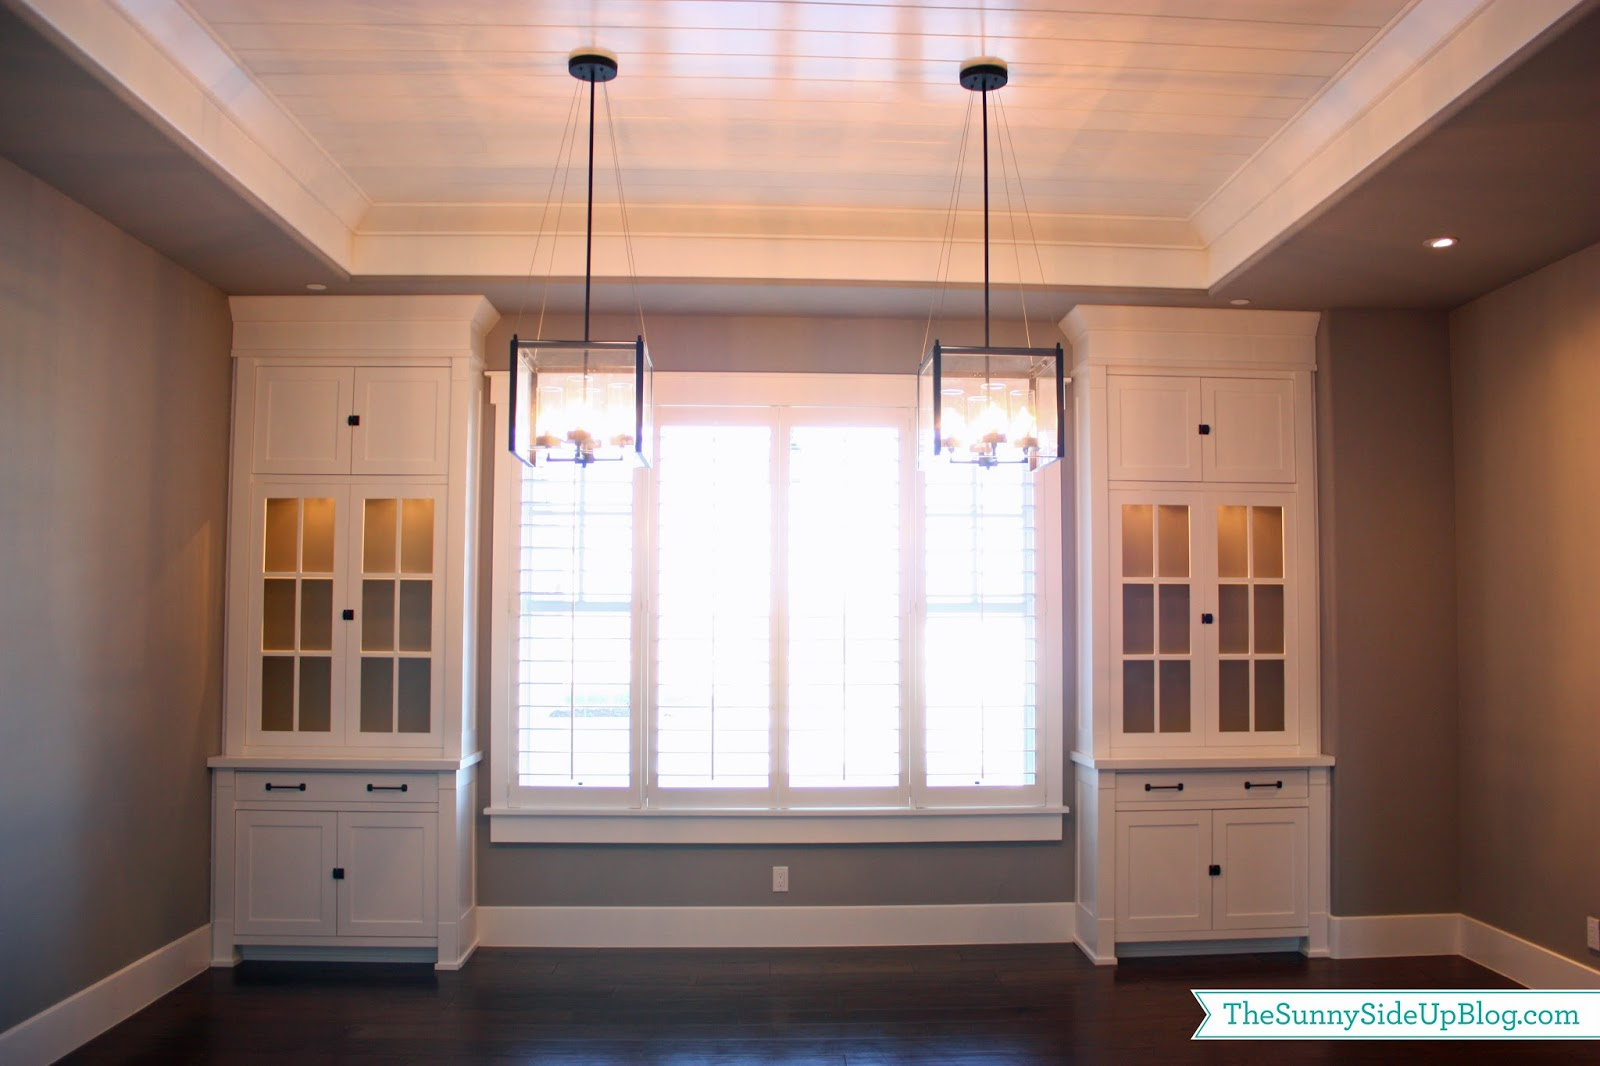 Lets Talk Decor Finally A Few Days Ago I Shared Our New Formal Dining Room With You All Nice Blank Slate Here Are Details About The